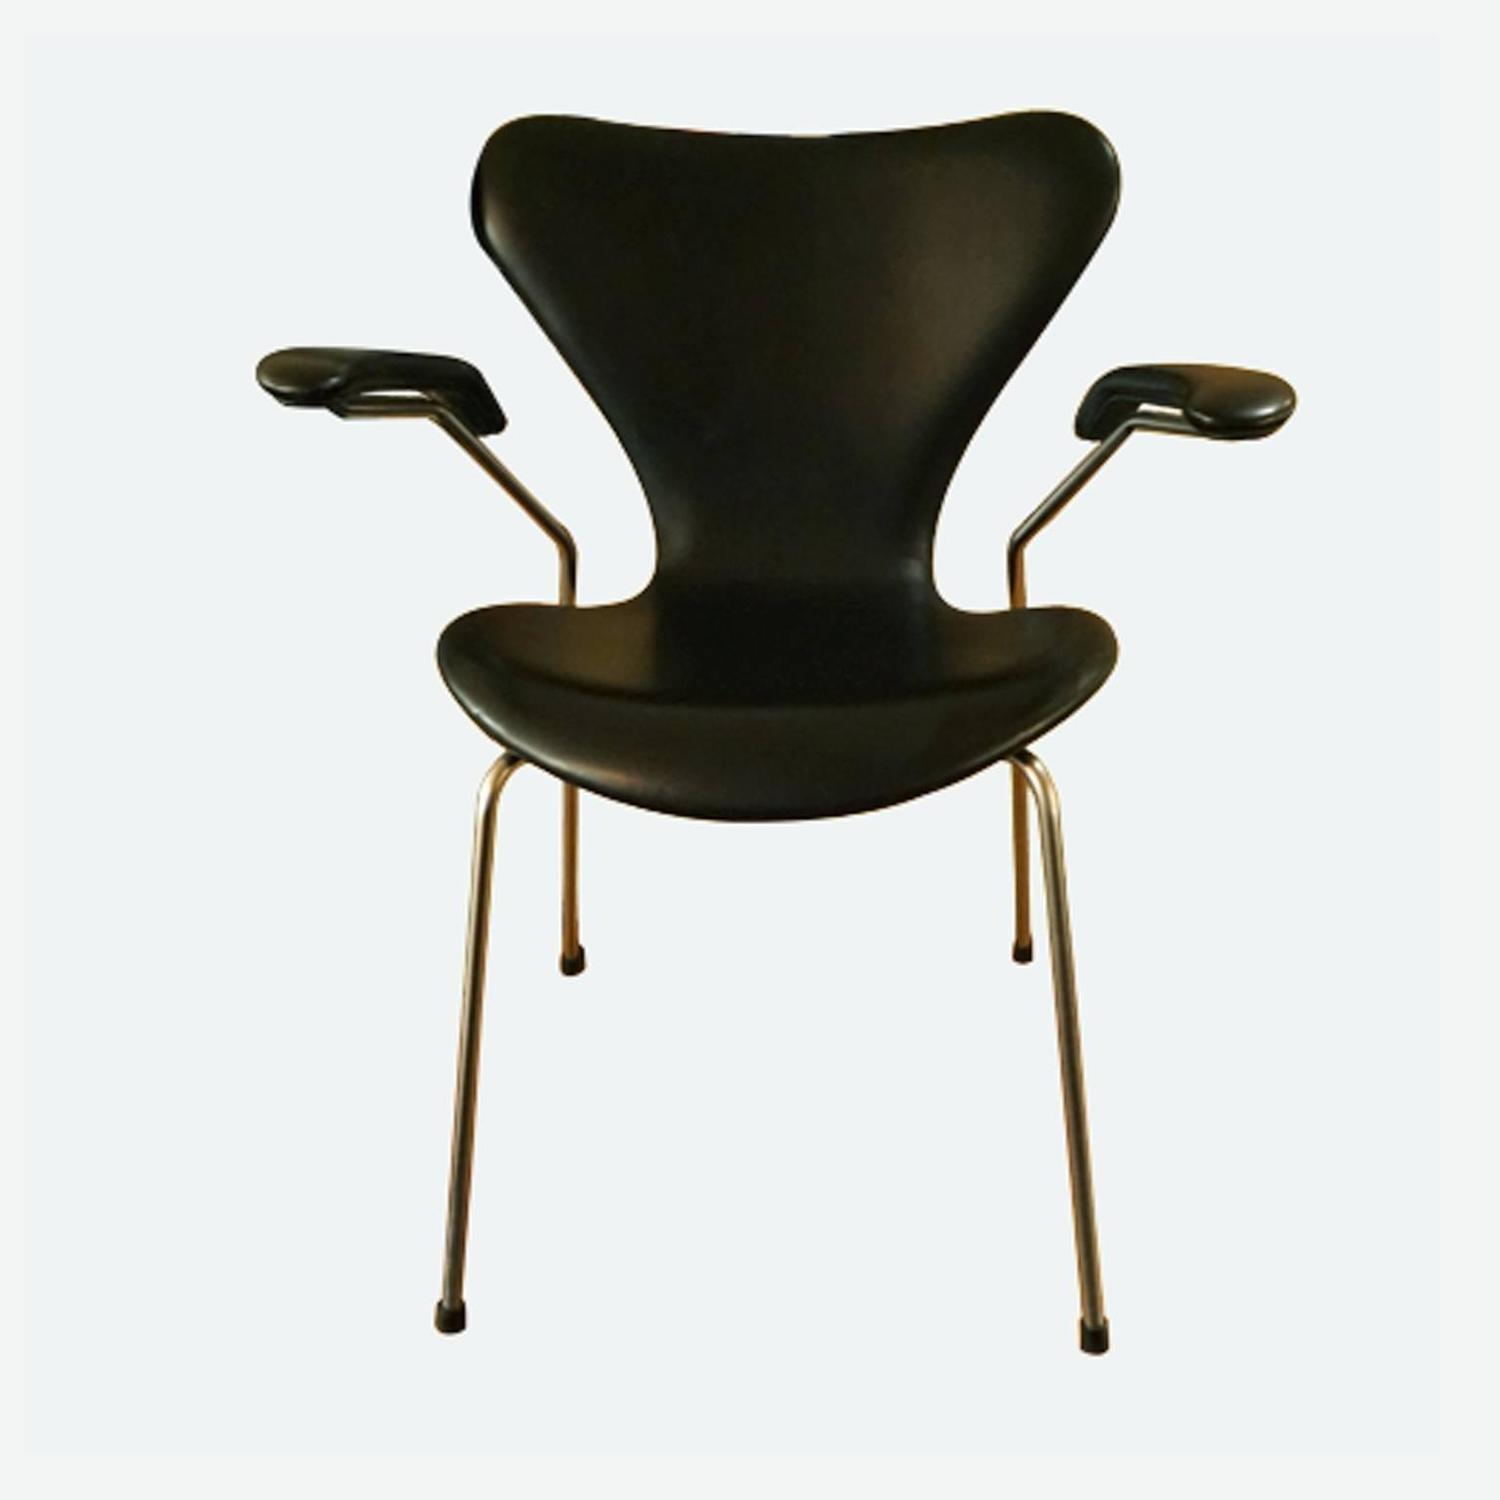 long lounge long lounge chair 25 best ideas about rocking chairs on ballard design. Black Bedroom Furniture Sets. Home Design Ideas